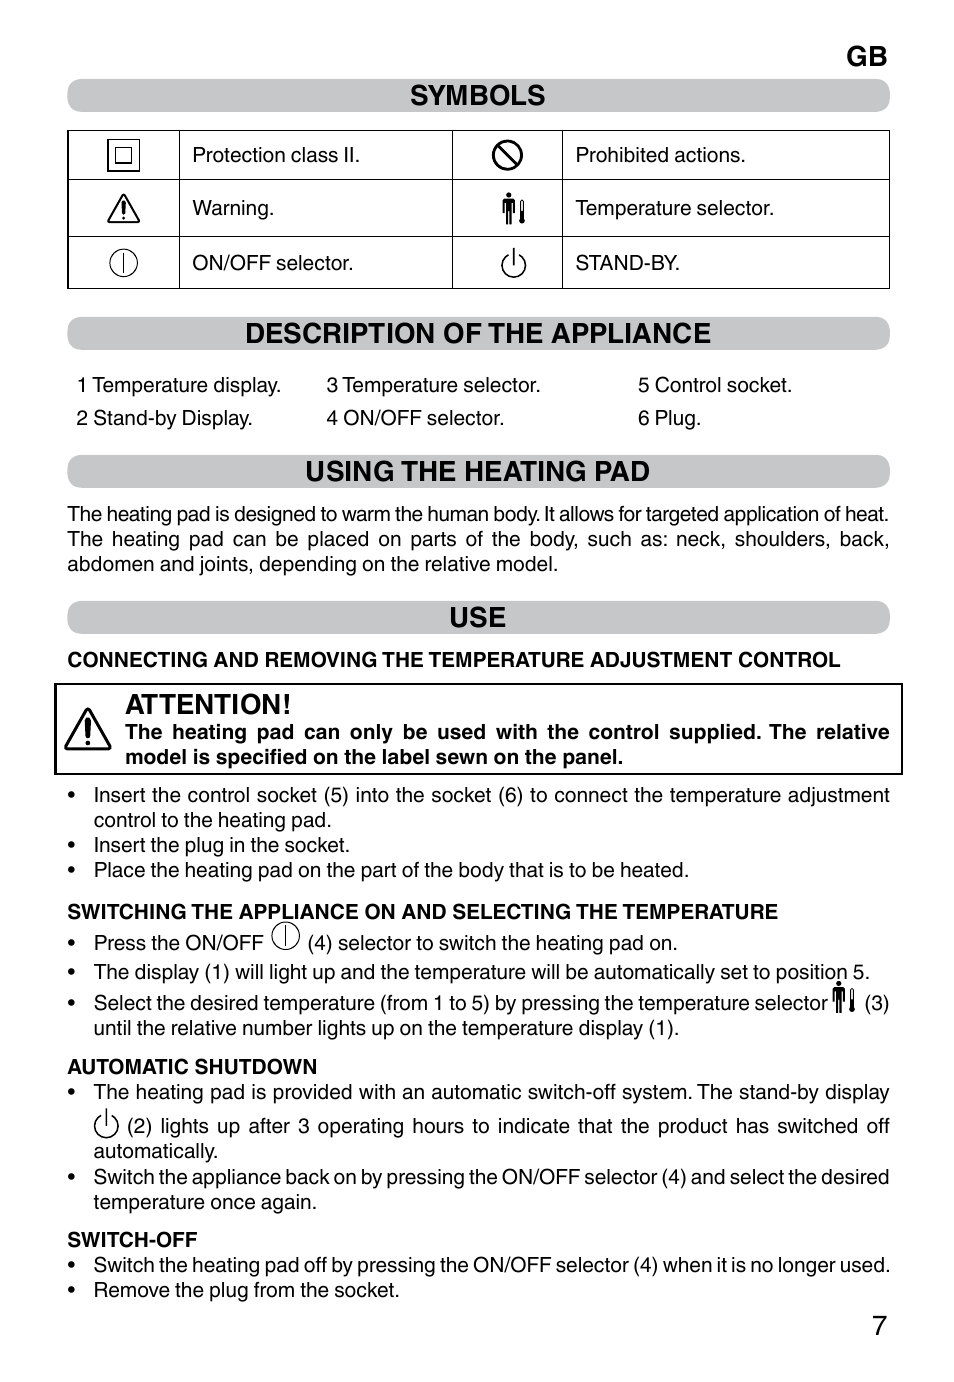 Gb 7 symbols, Description of the appliance, Using the heating pad ...